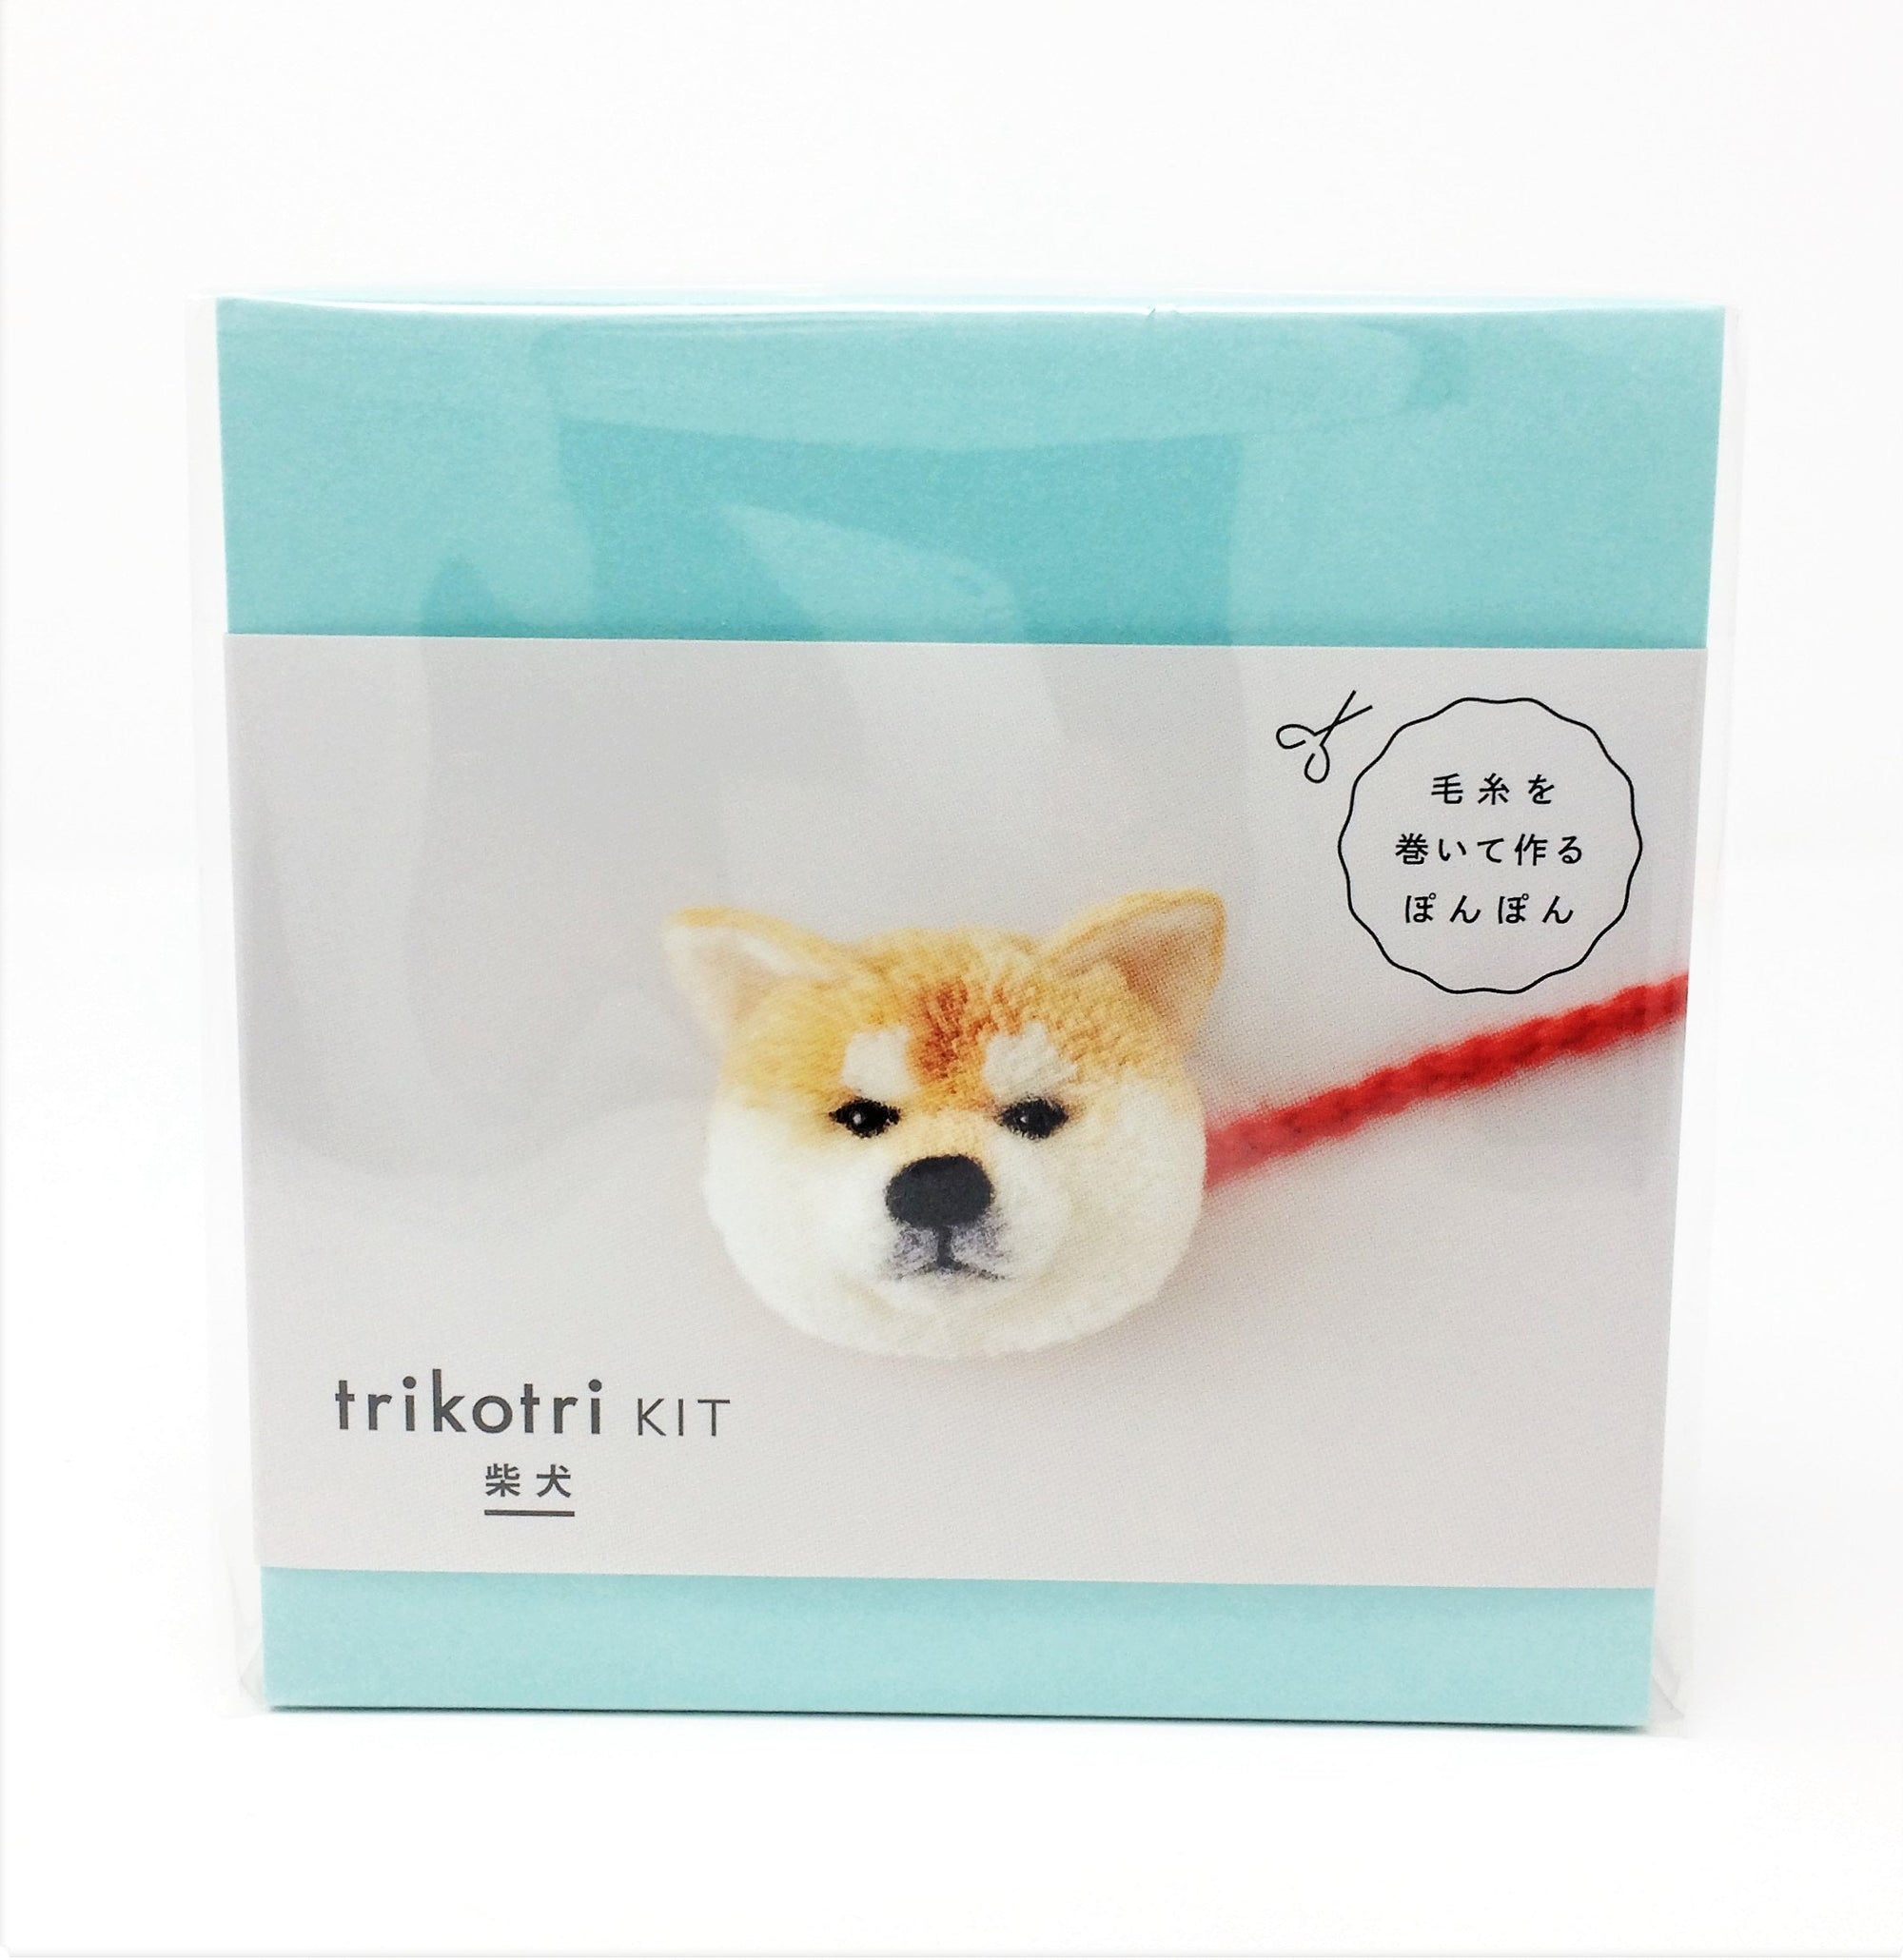 Trikotri KIT - Japanese Shiba Inu Pom Pom Kit (English)